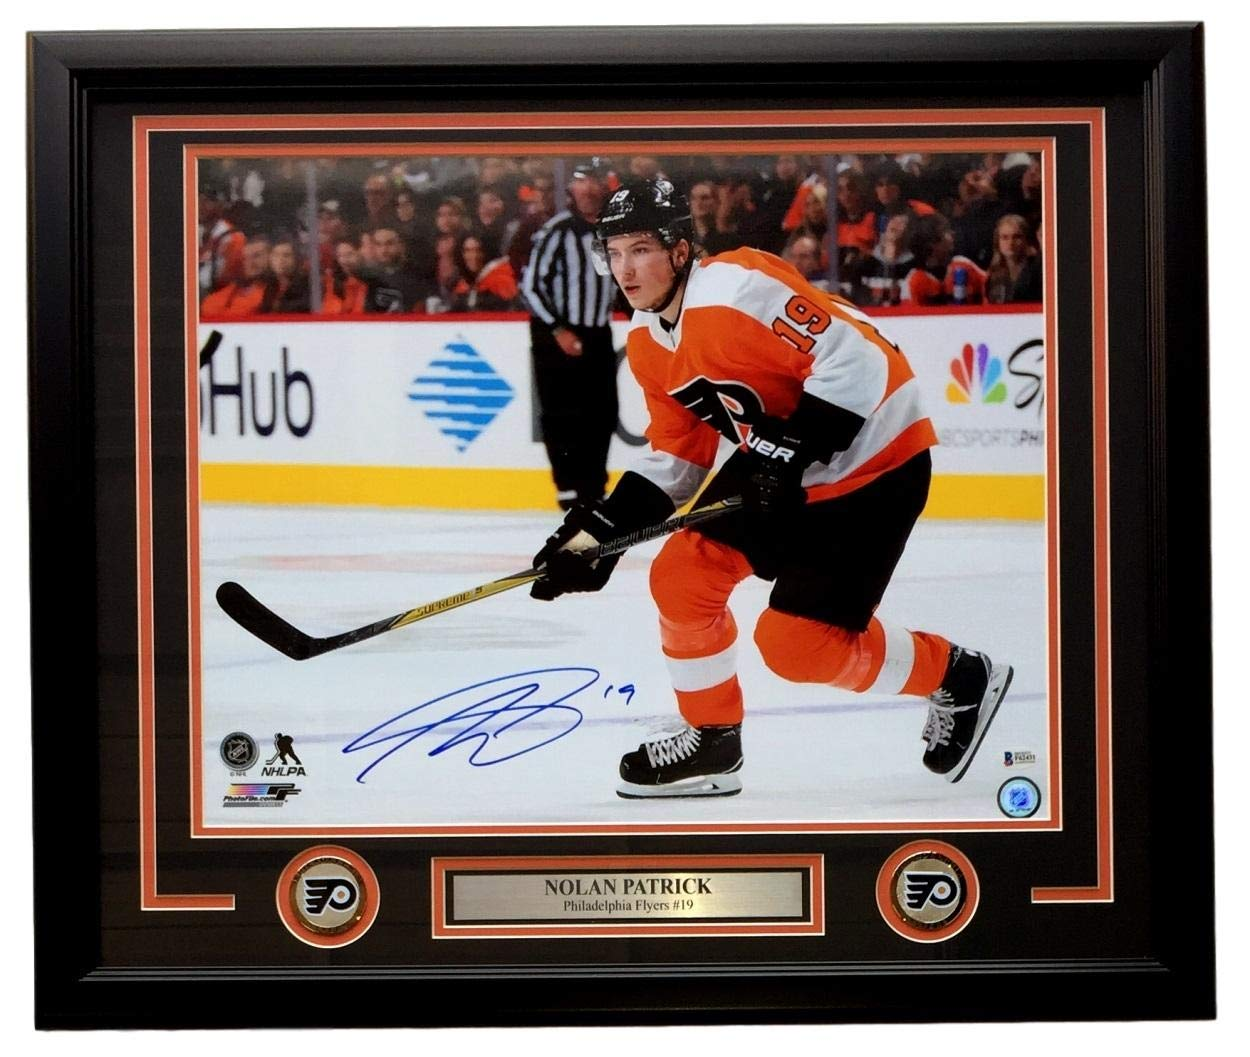 Nolan Patrick Signed Framed 16x20 Philadelphia Flyers Photo BAS